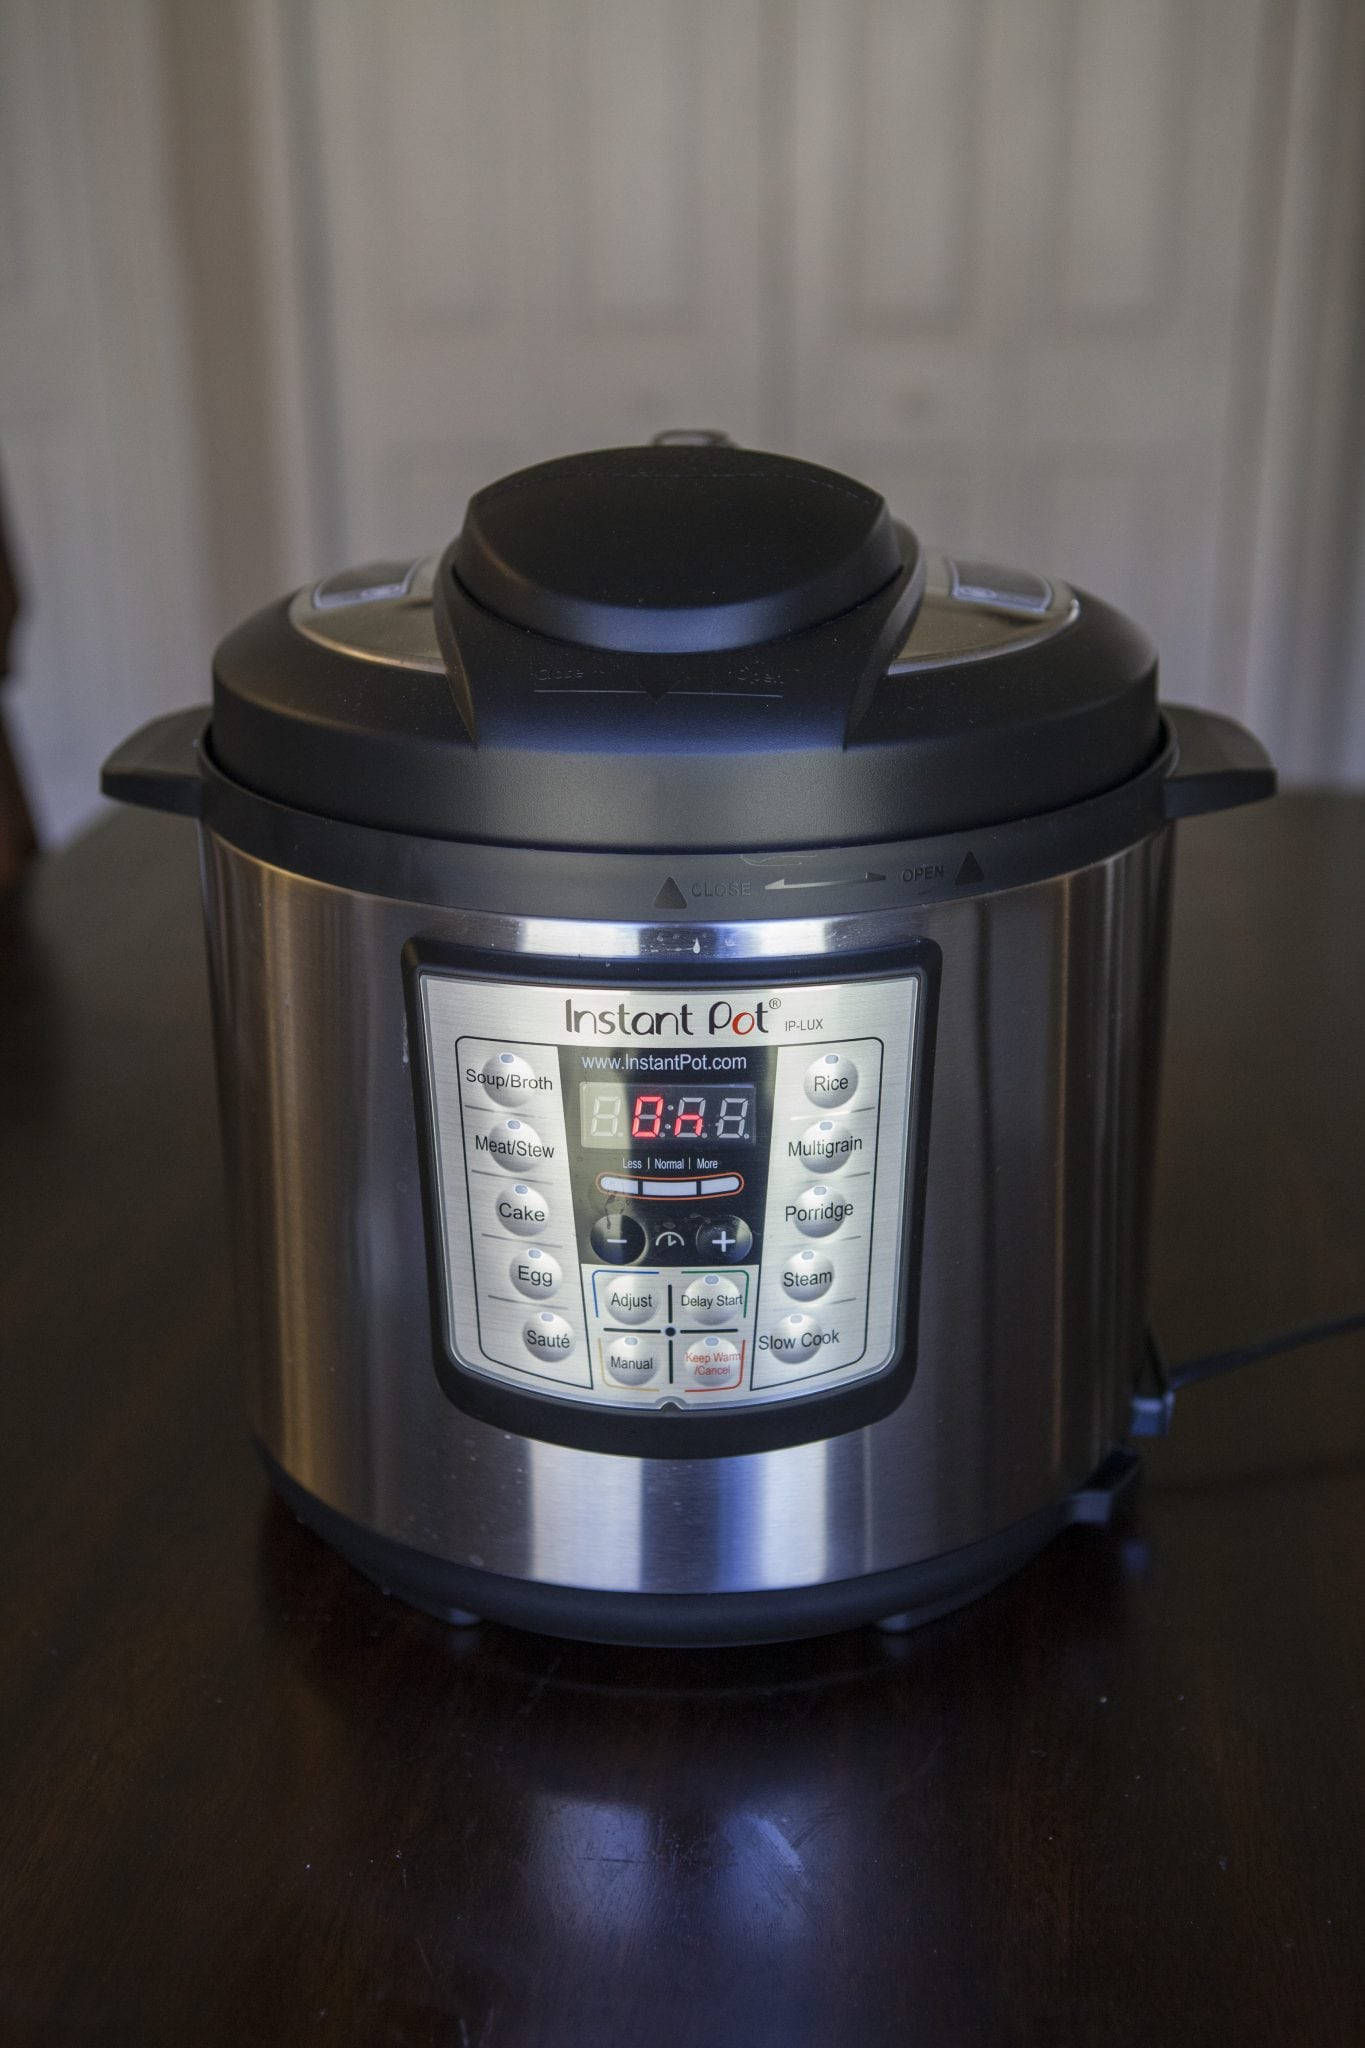 instant pot sitting on table